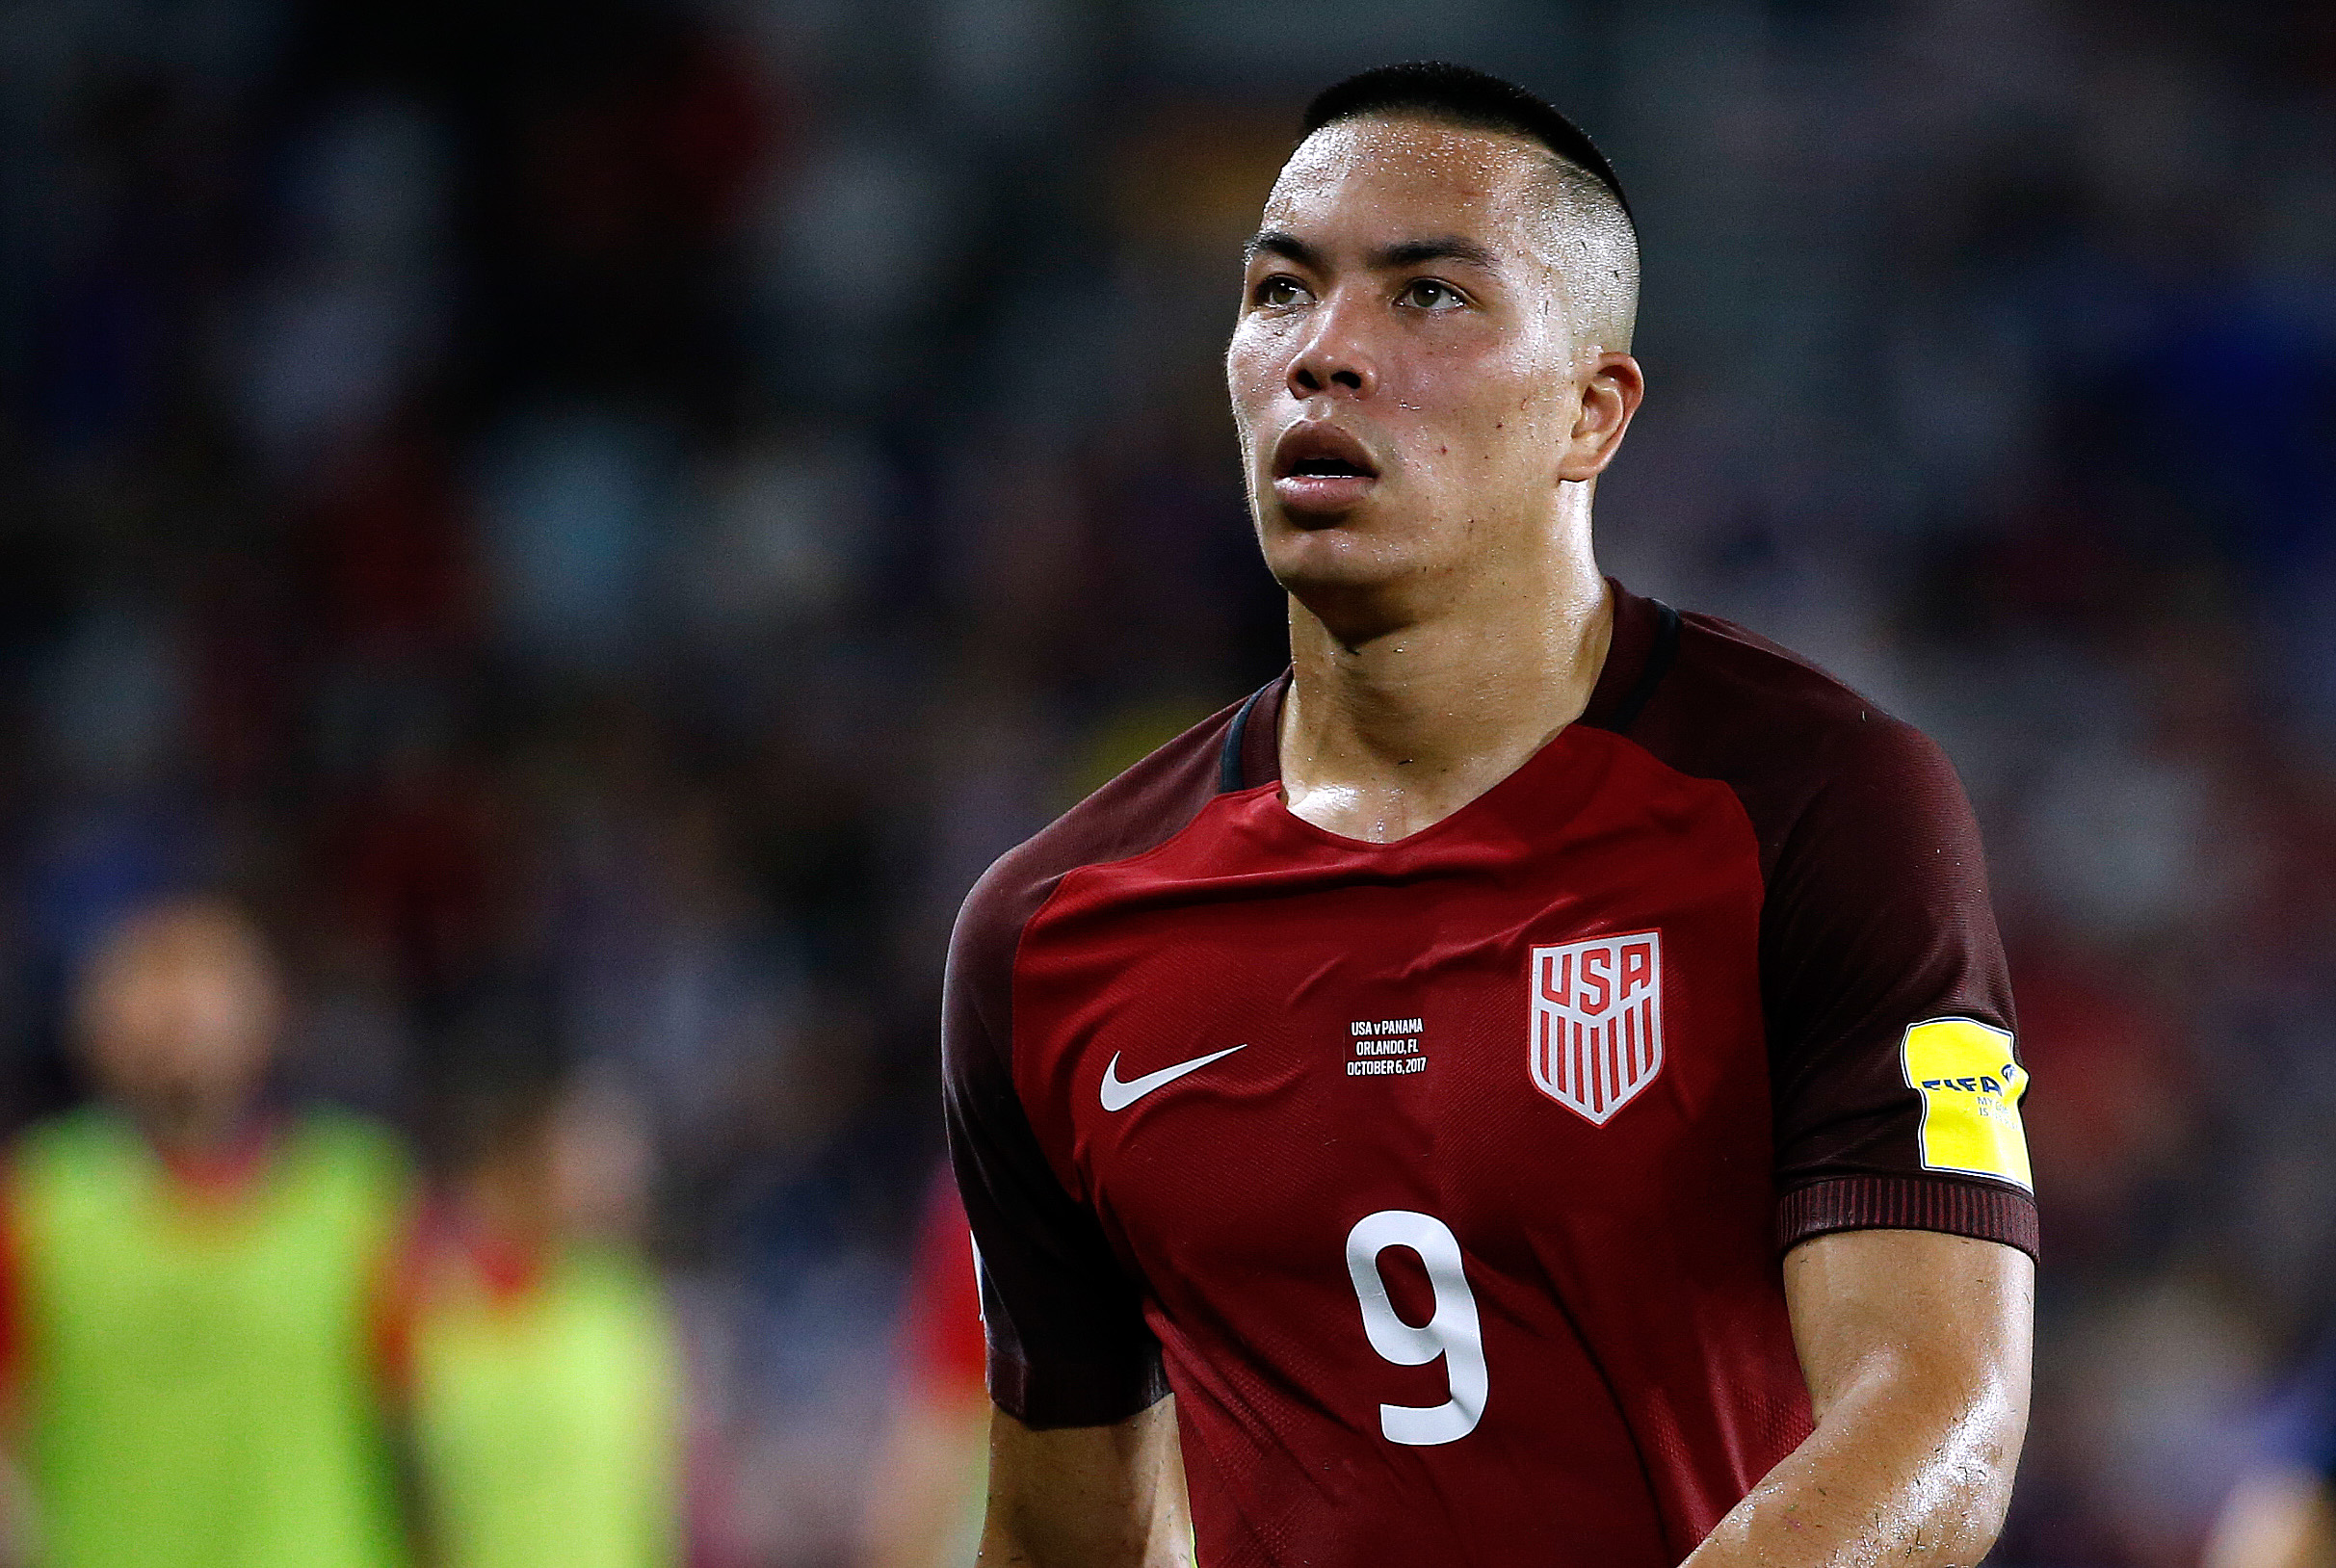 Soccer: 2018 World Cup Qualifier-Panama at USA